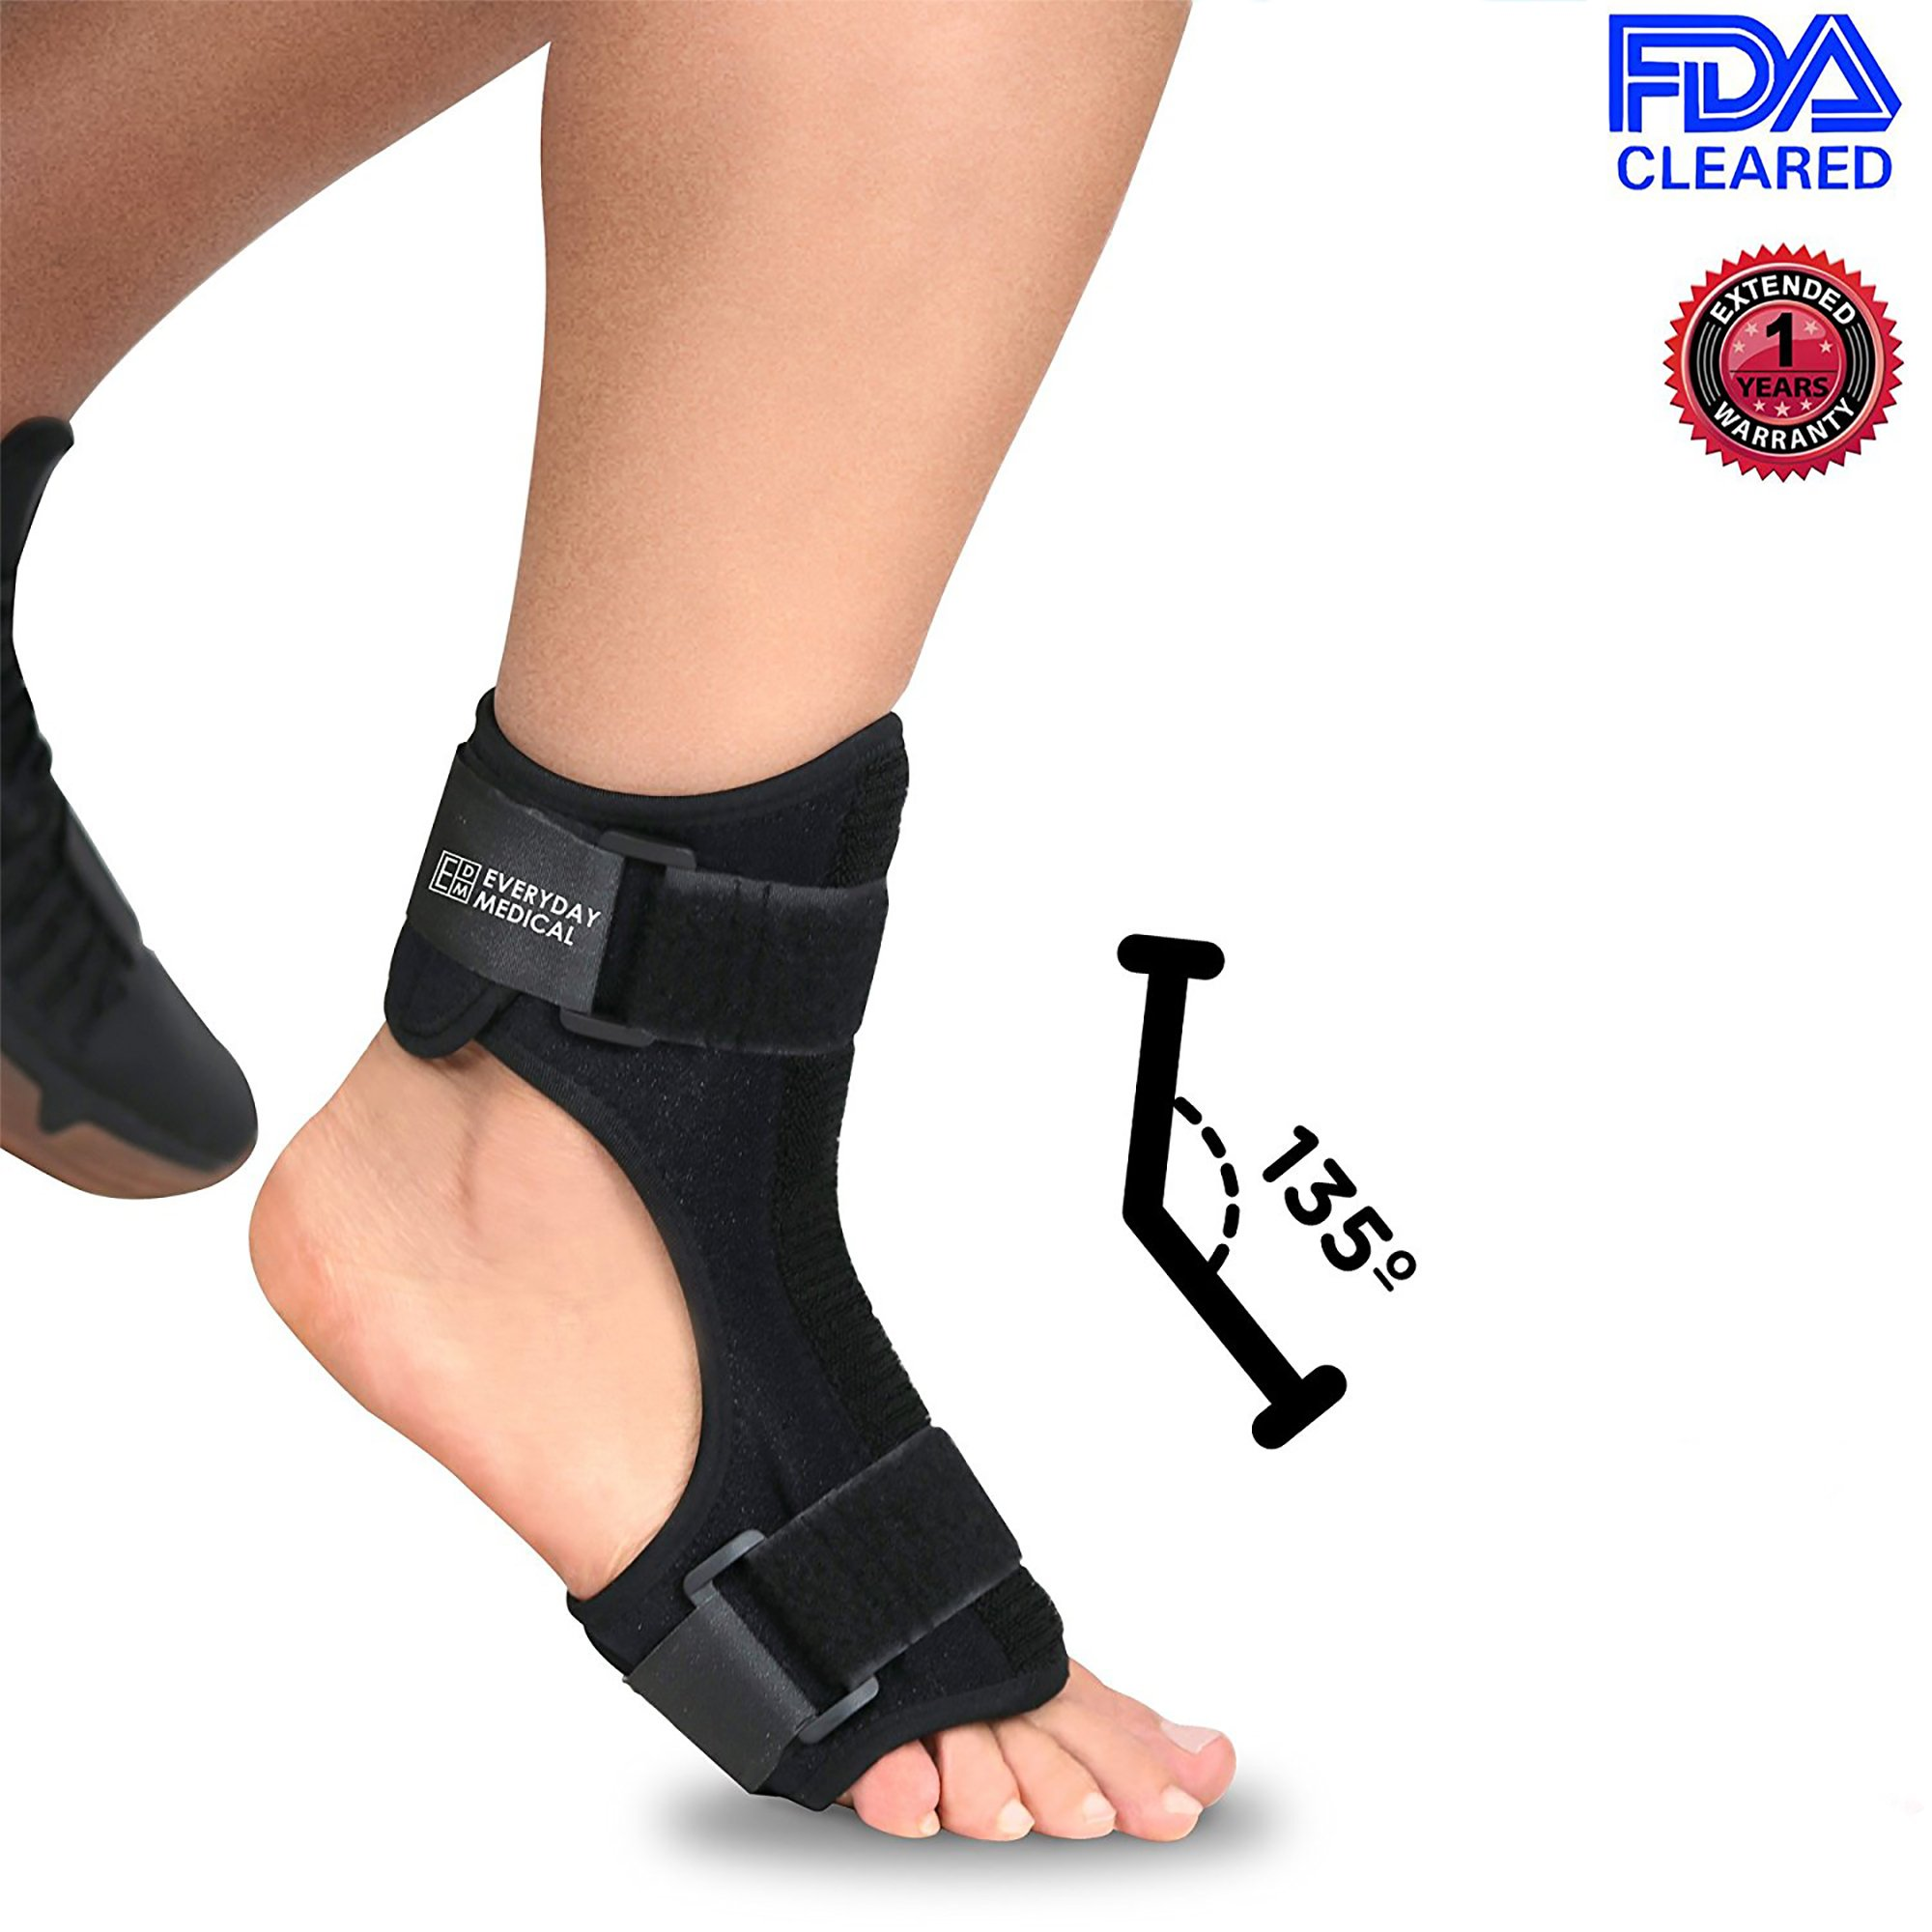 Everyday Medical Plantar Fasciitis Night Splint - Dorsal Night Splint for Plantar Fasciitis - Ergonomic Arch Foot Stretching Support with Bendable Bar - for Achilles Tendonitis, Heel Pain & Drop Foot